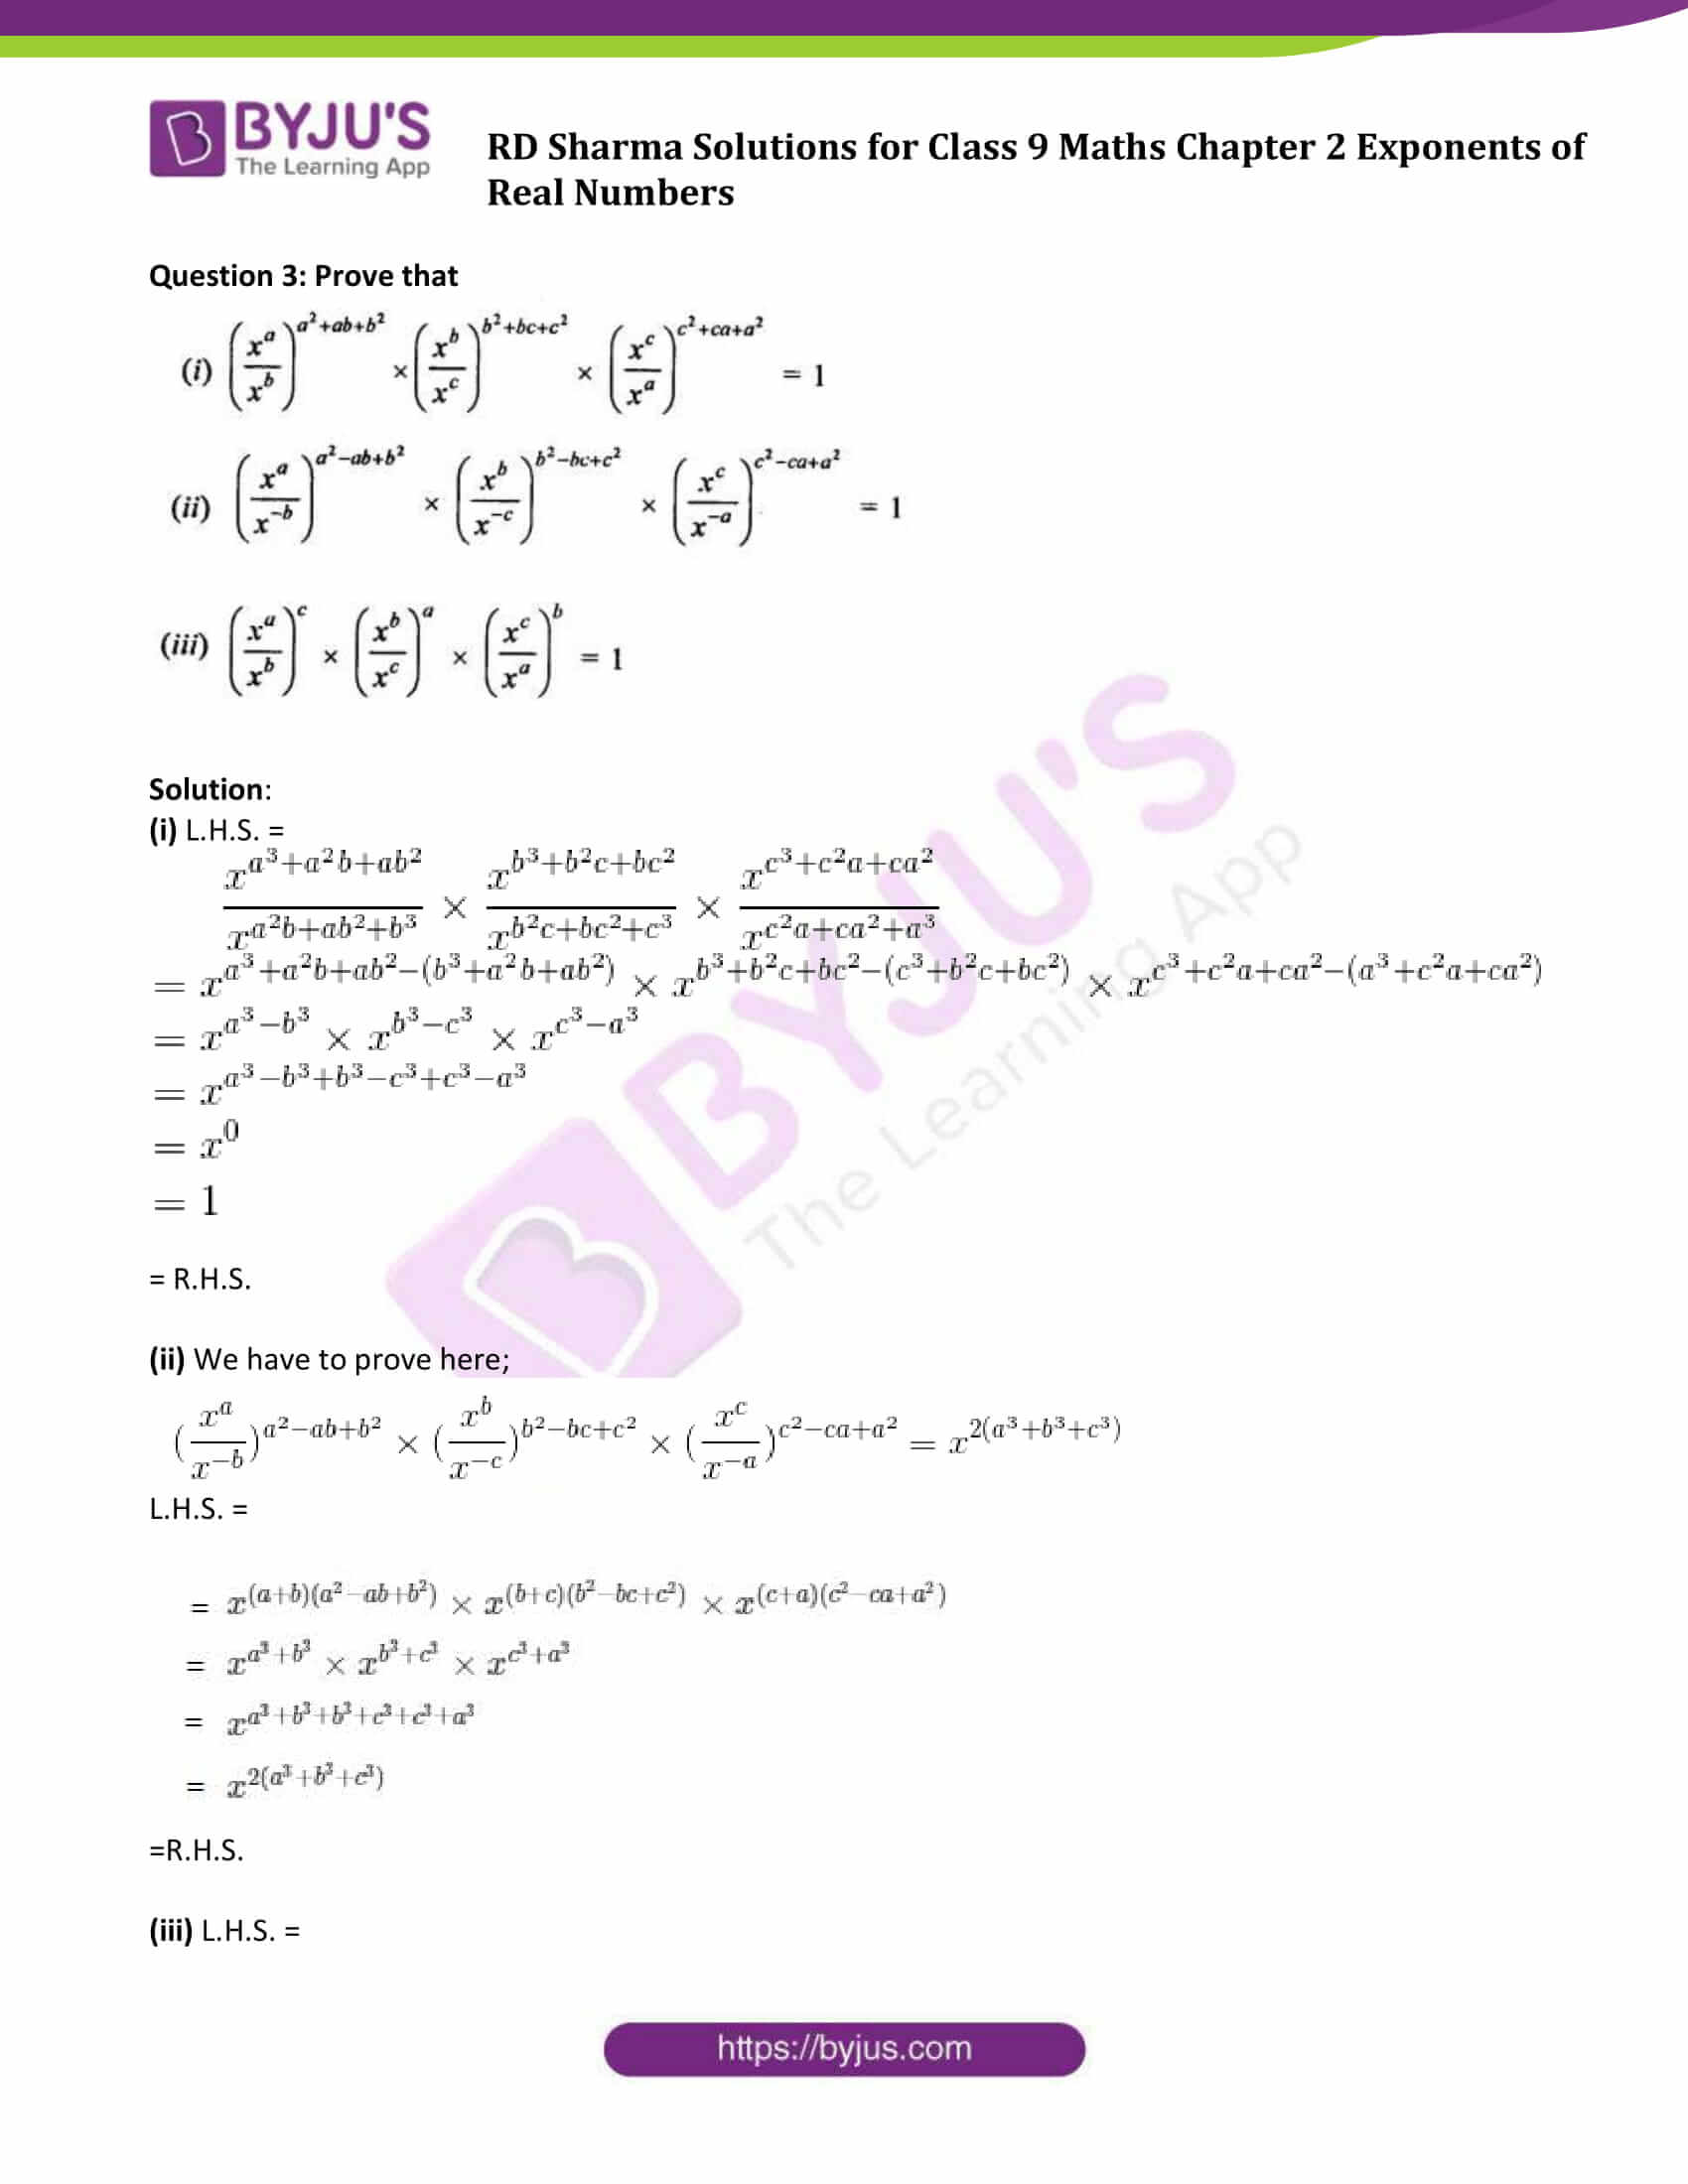 RD Sharma Solution class 9 Maths Chapter 2 Exponents of Real Numbers 04